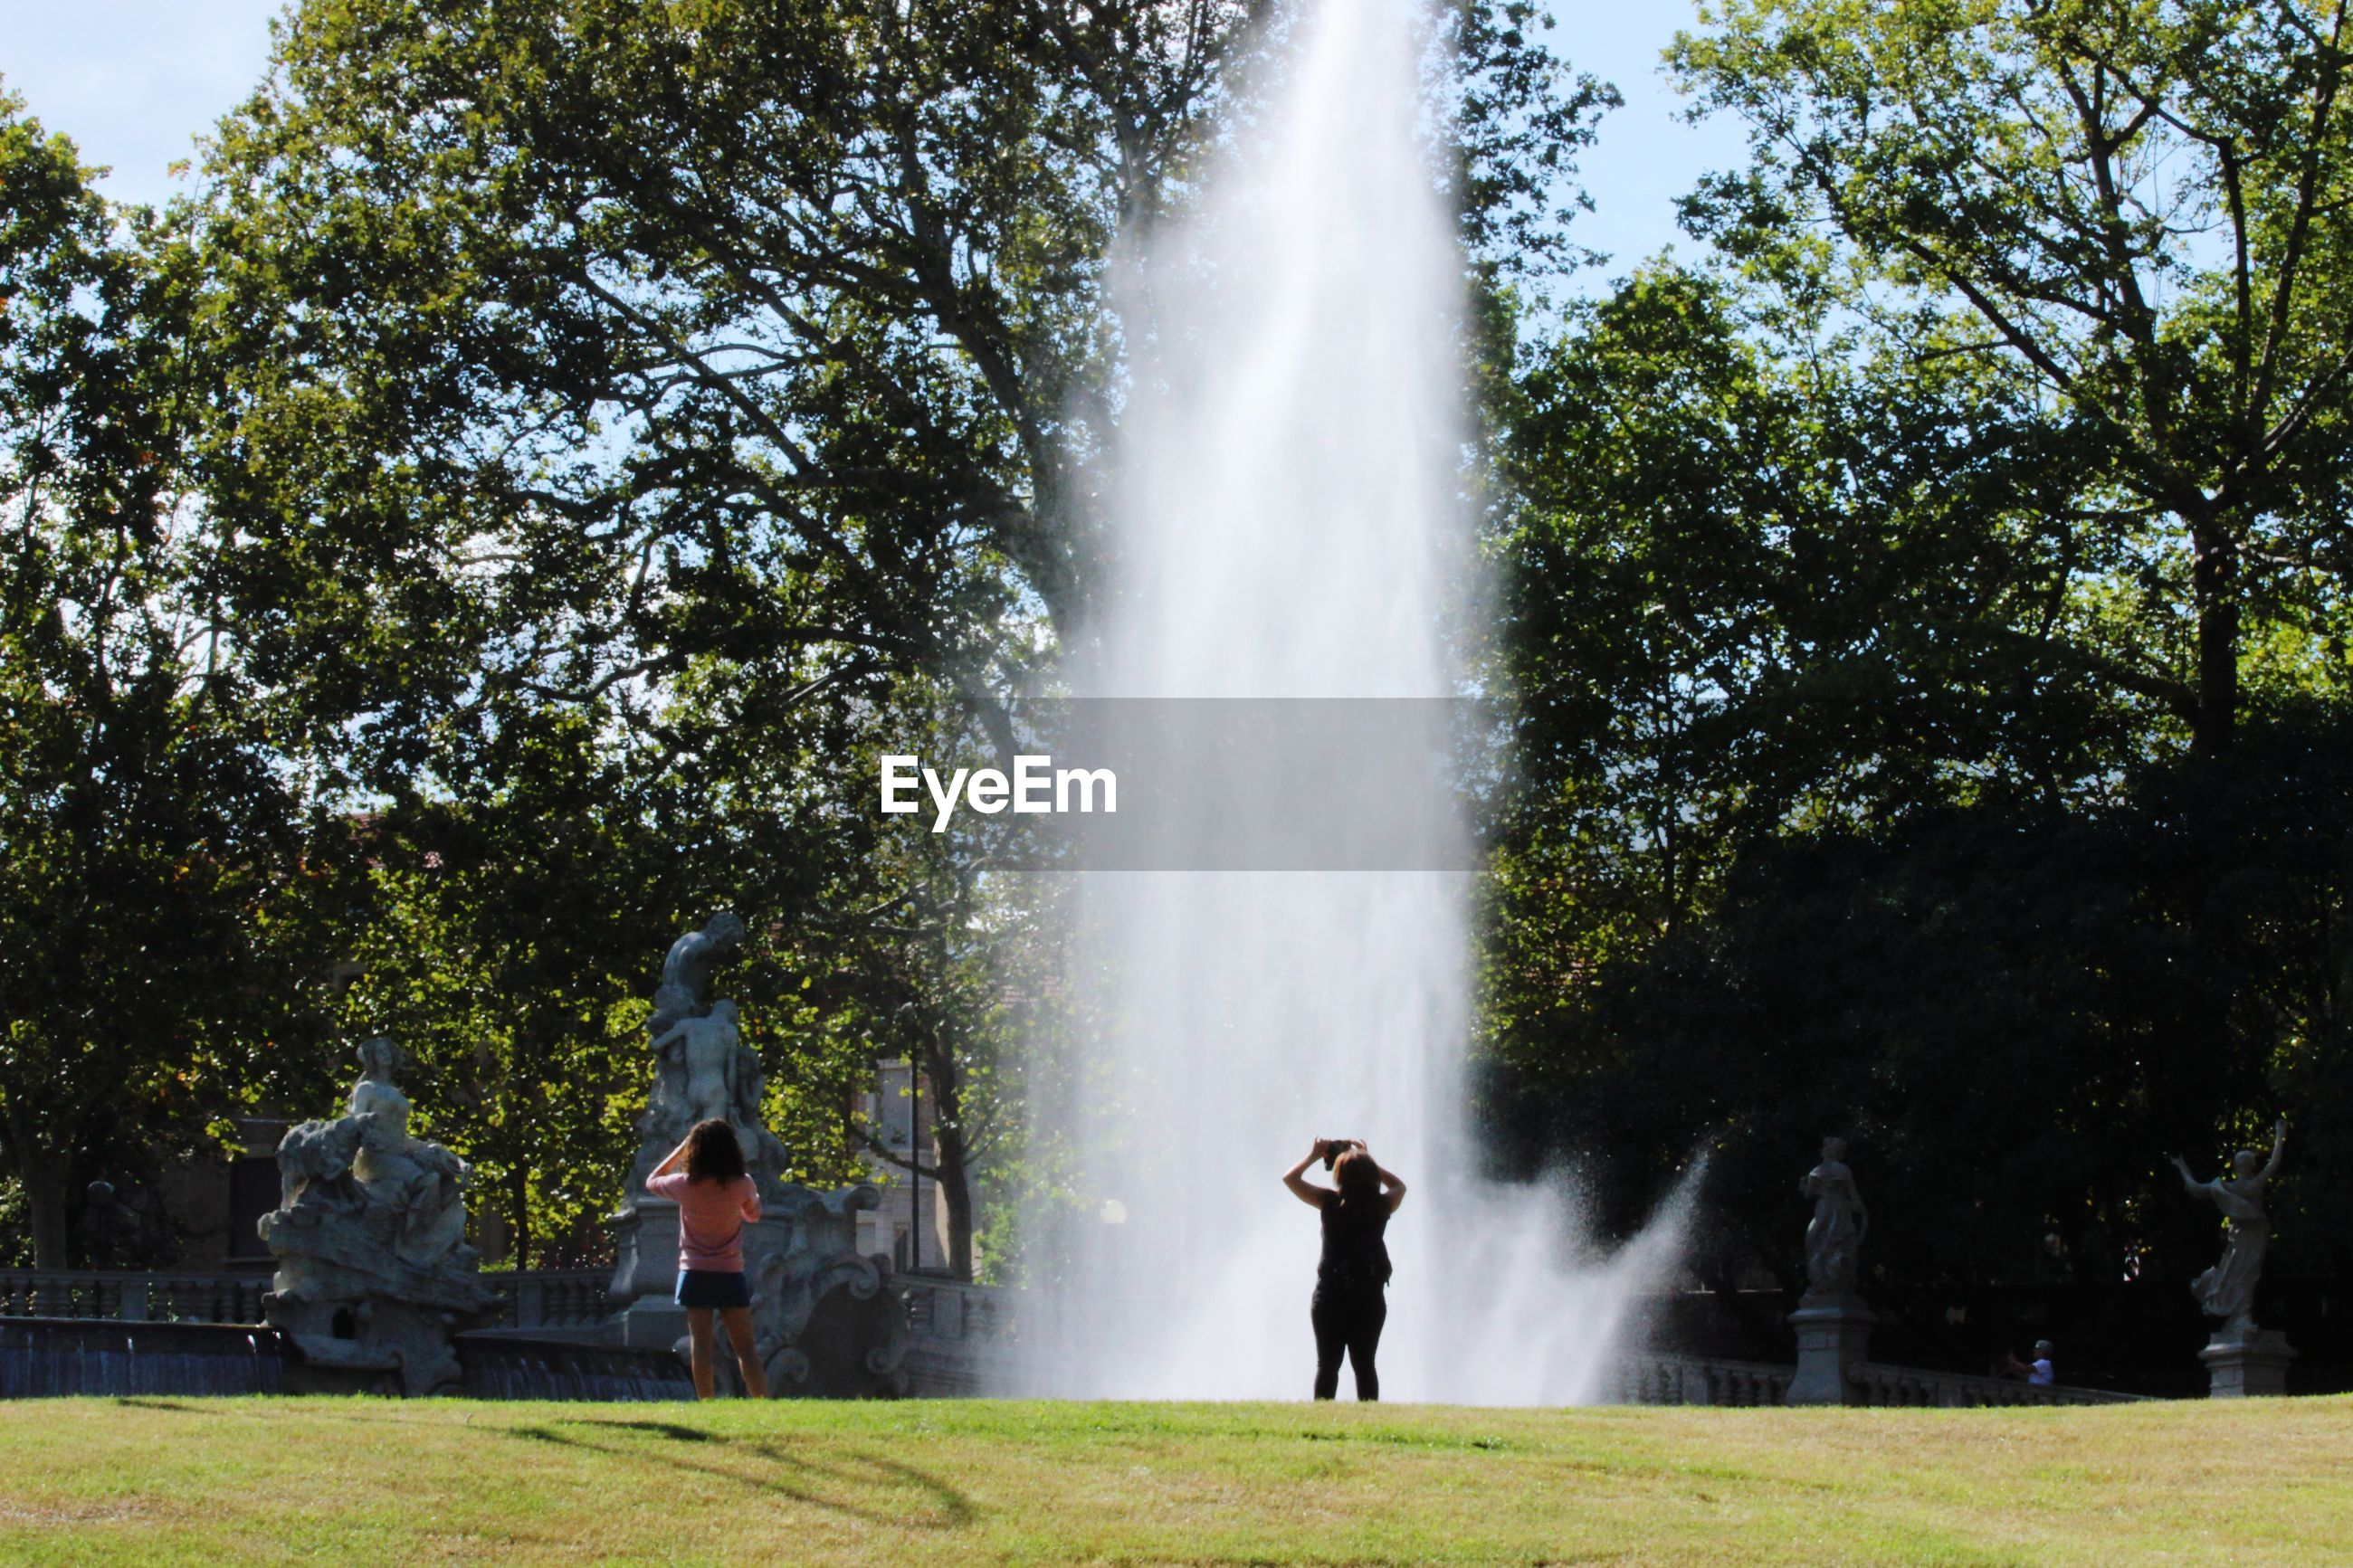 PEOPLE IN PARK AGAINST FOUNTAIN